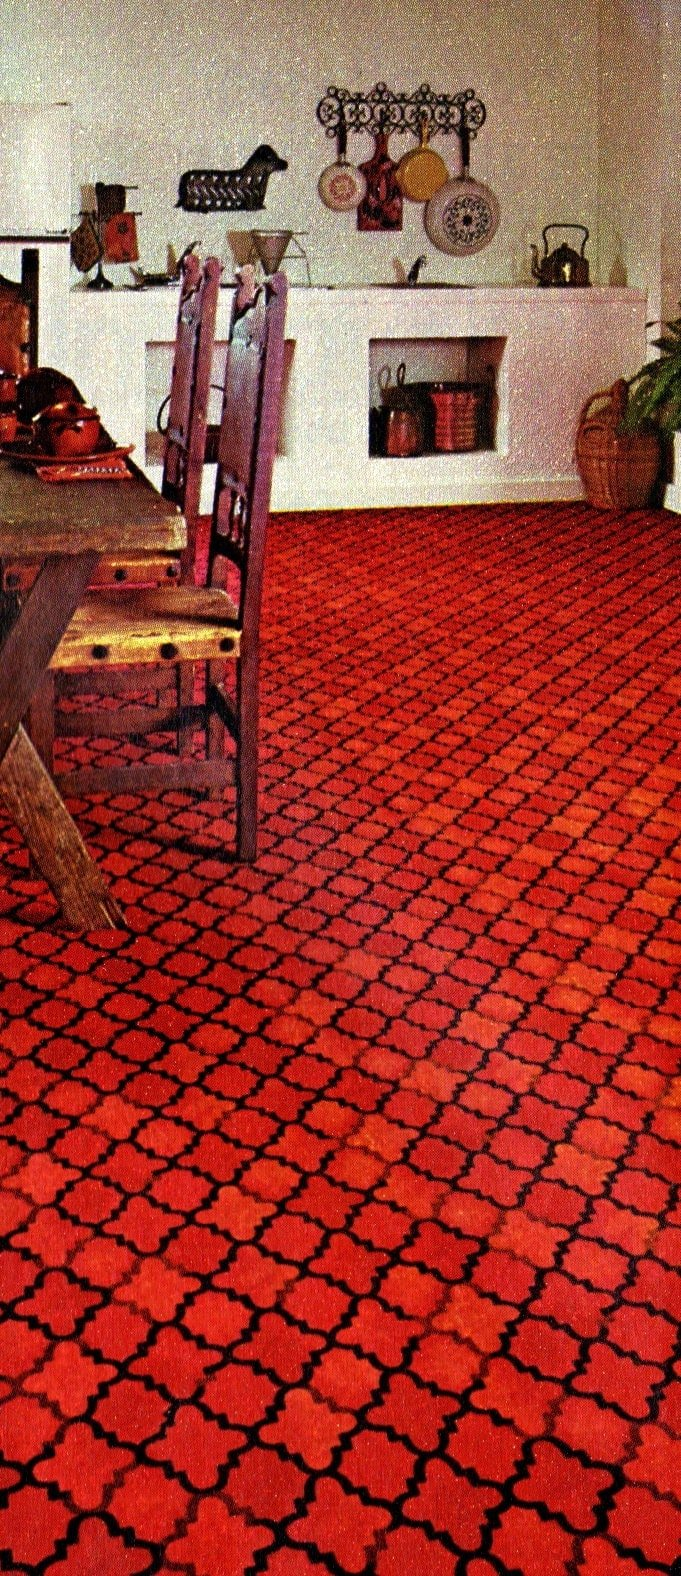 Kitchen carpeting for the home from 1973 (5)